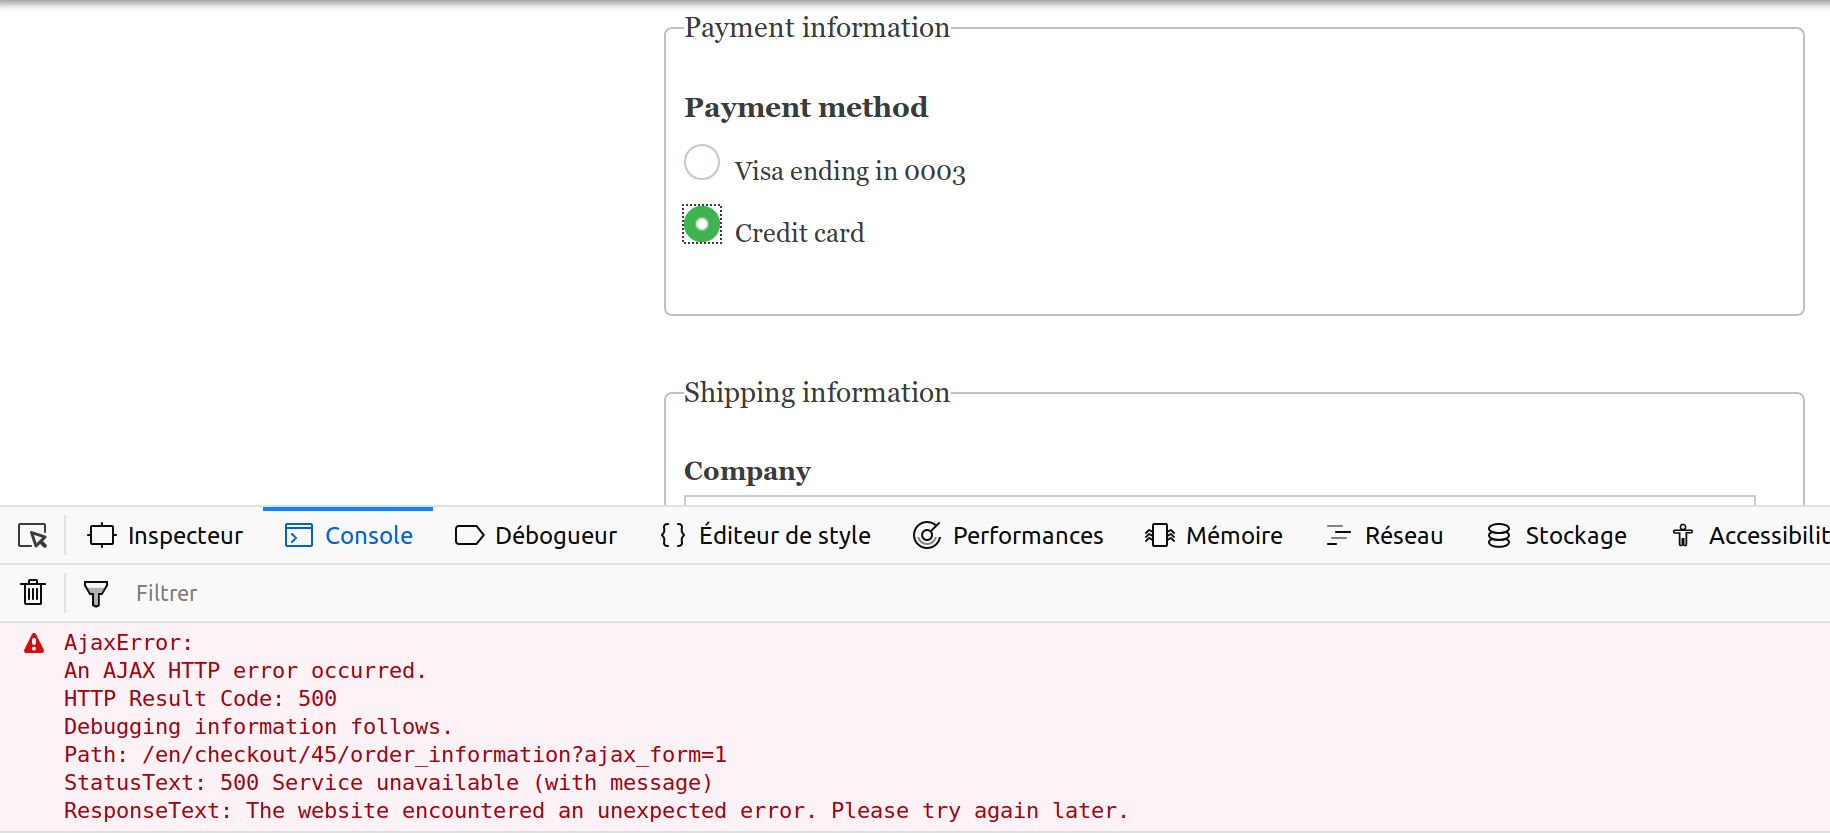 Can not add a new payment method when Webform Submission Log